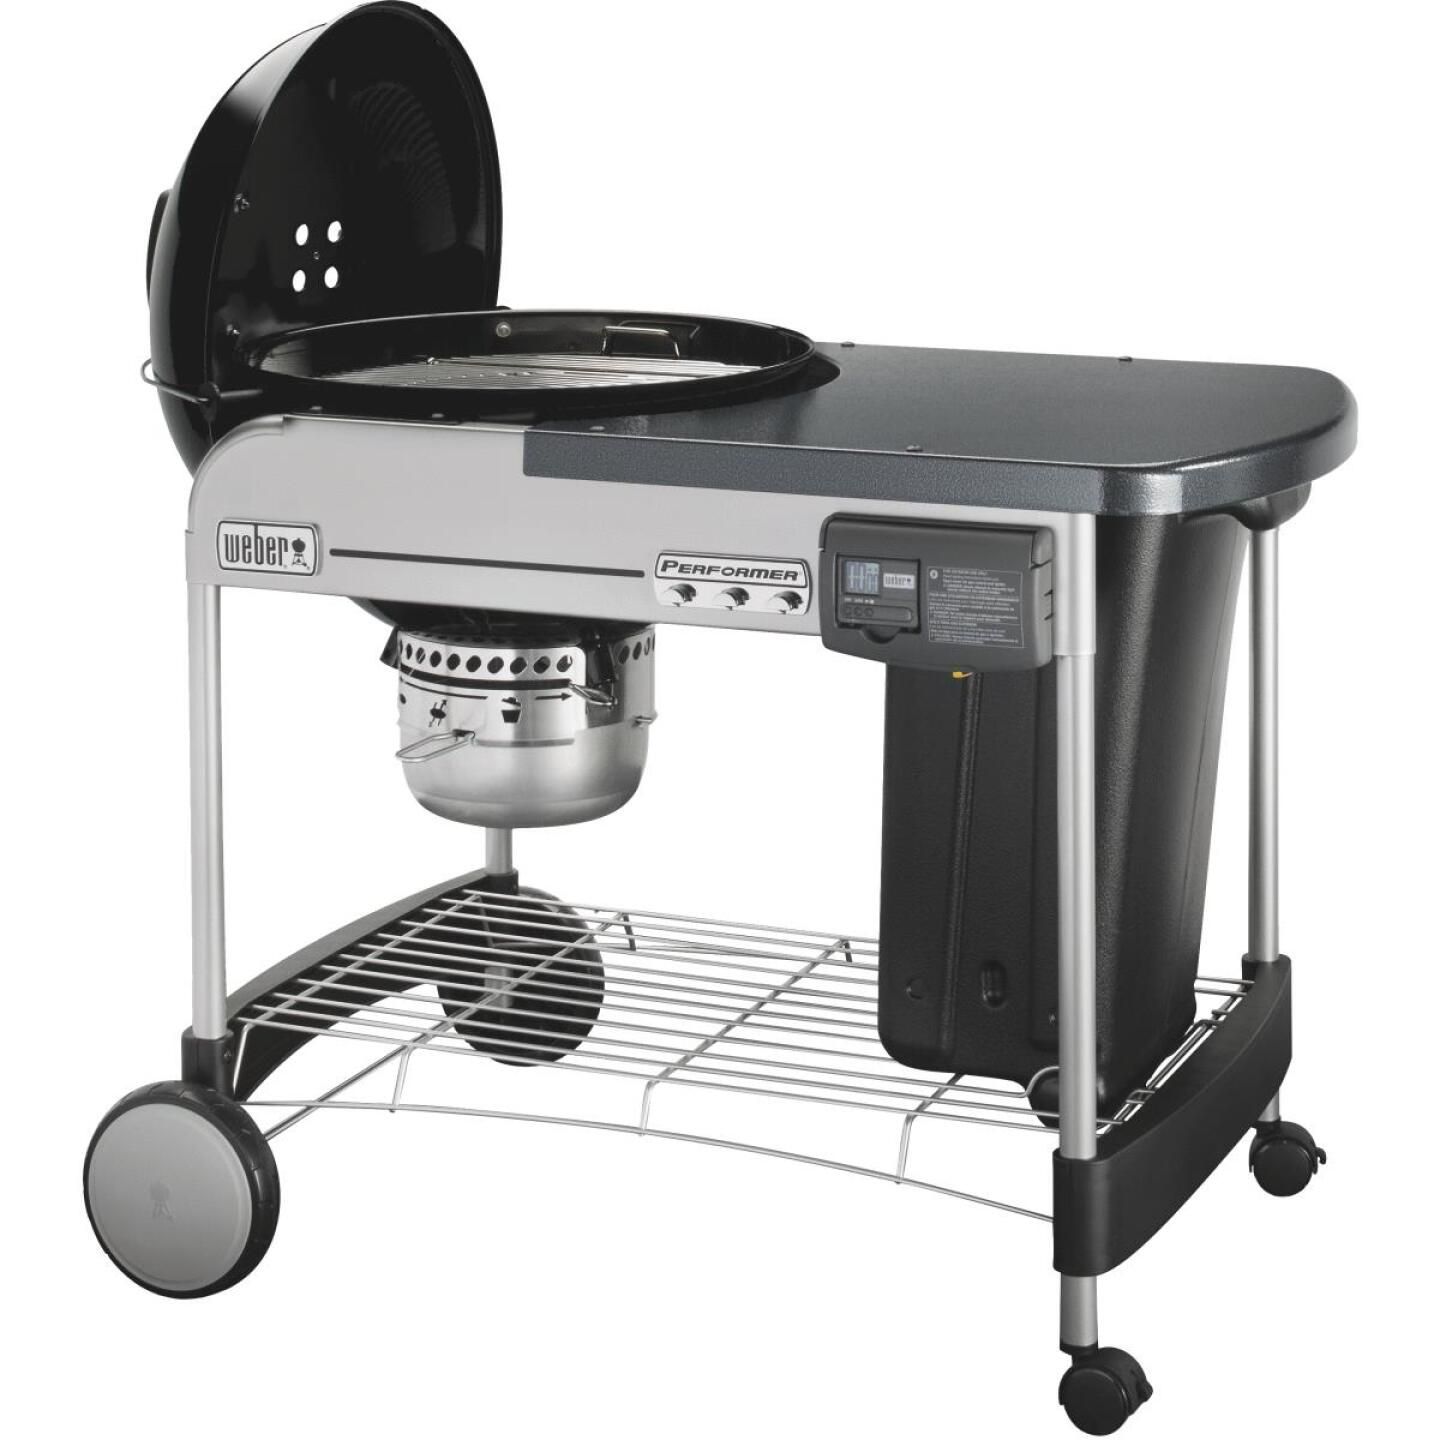 Weber Performer Deluxe 22 In. Black Charcoal Grill Image 6